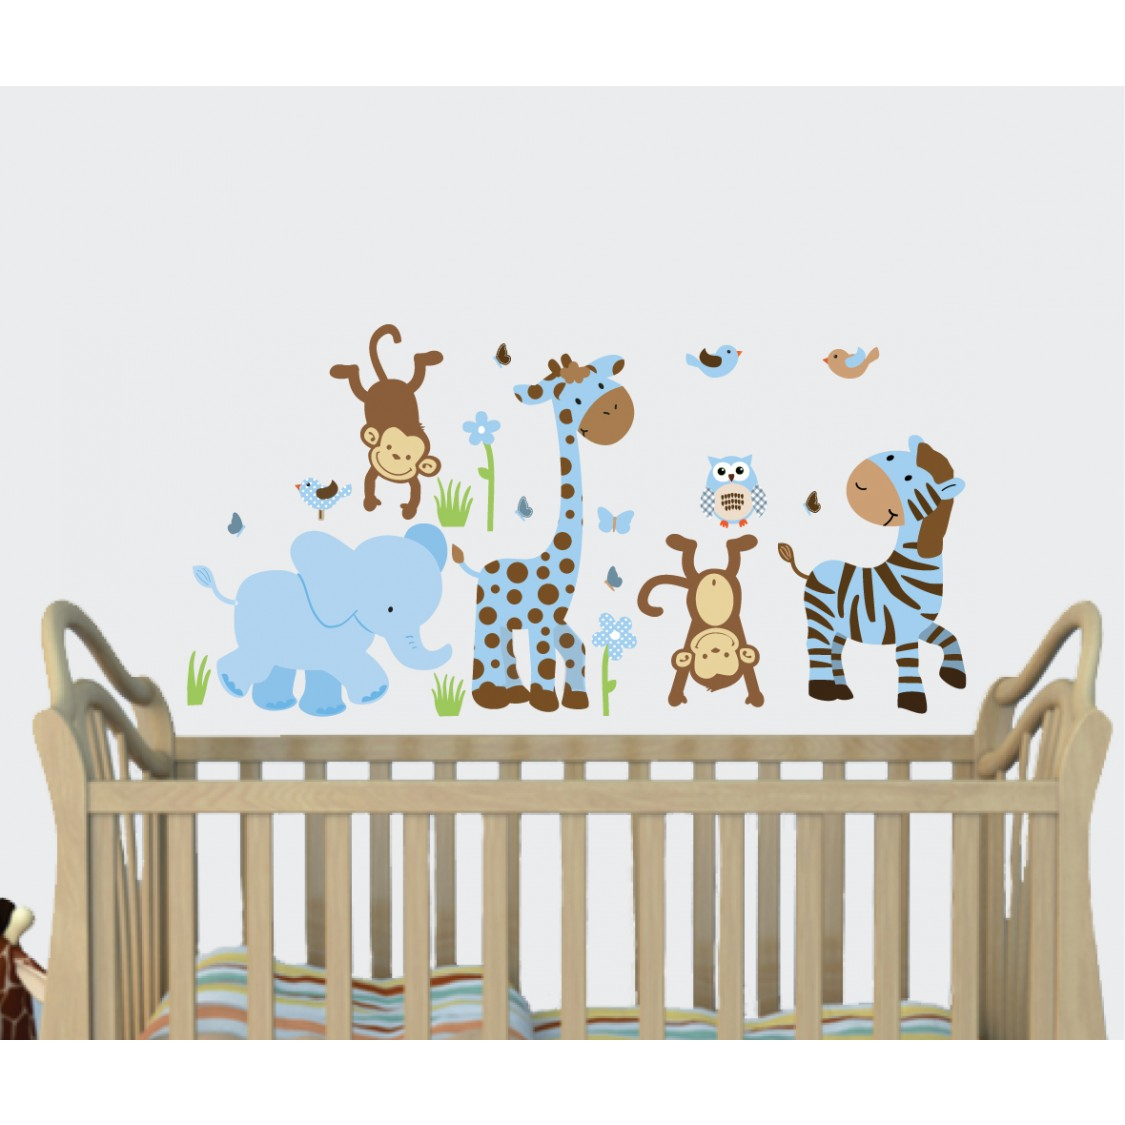 Blue Amp Brown Jungle Murals For Kids Rooms With Giraffe